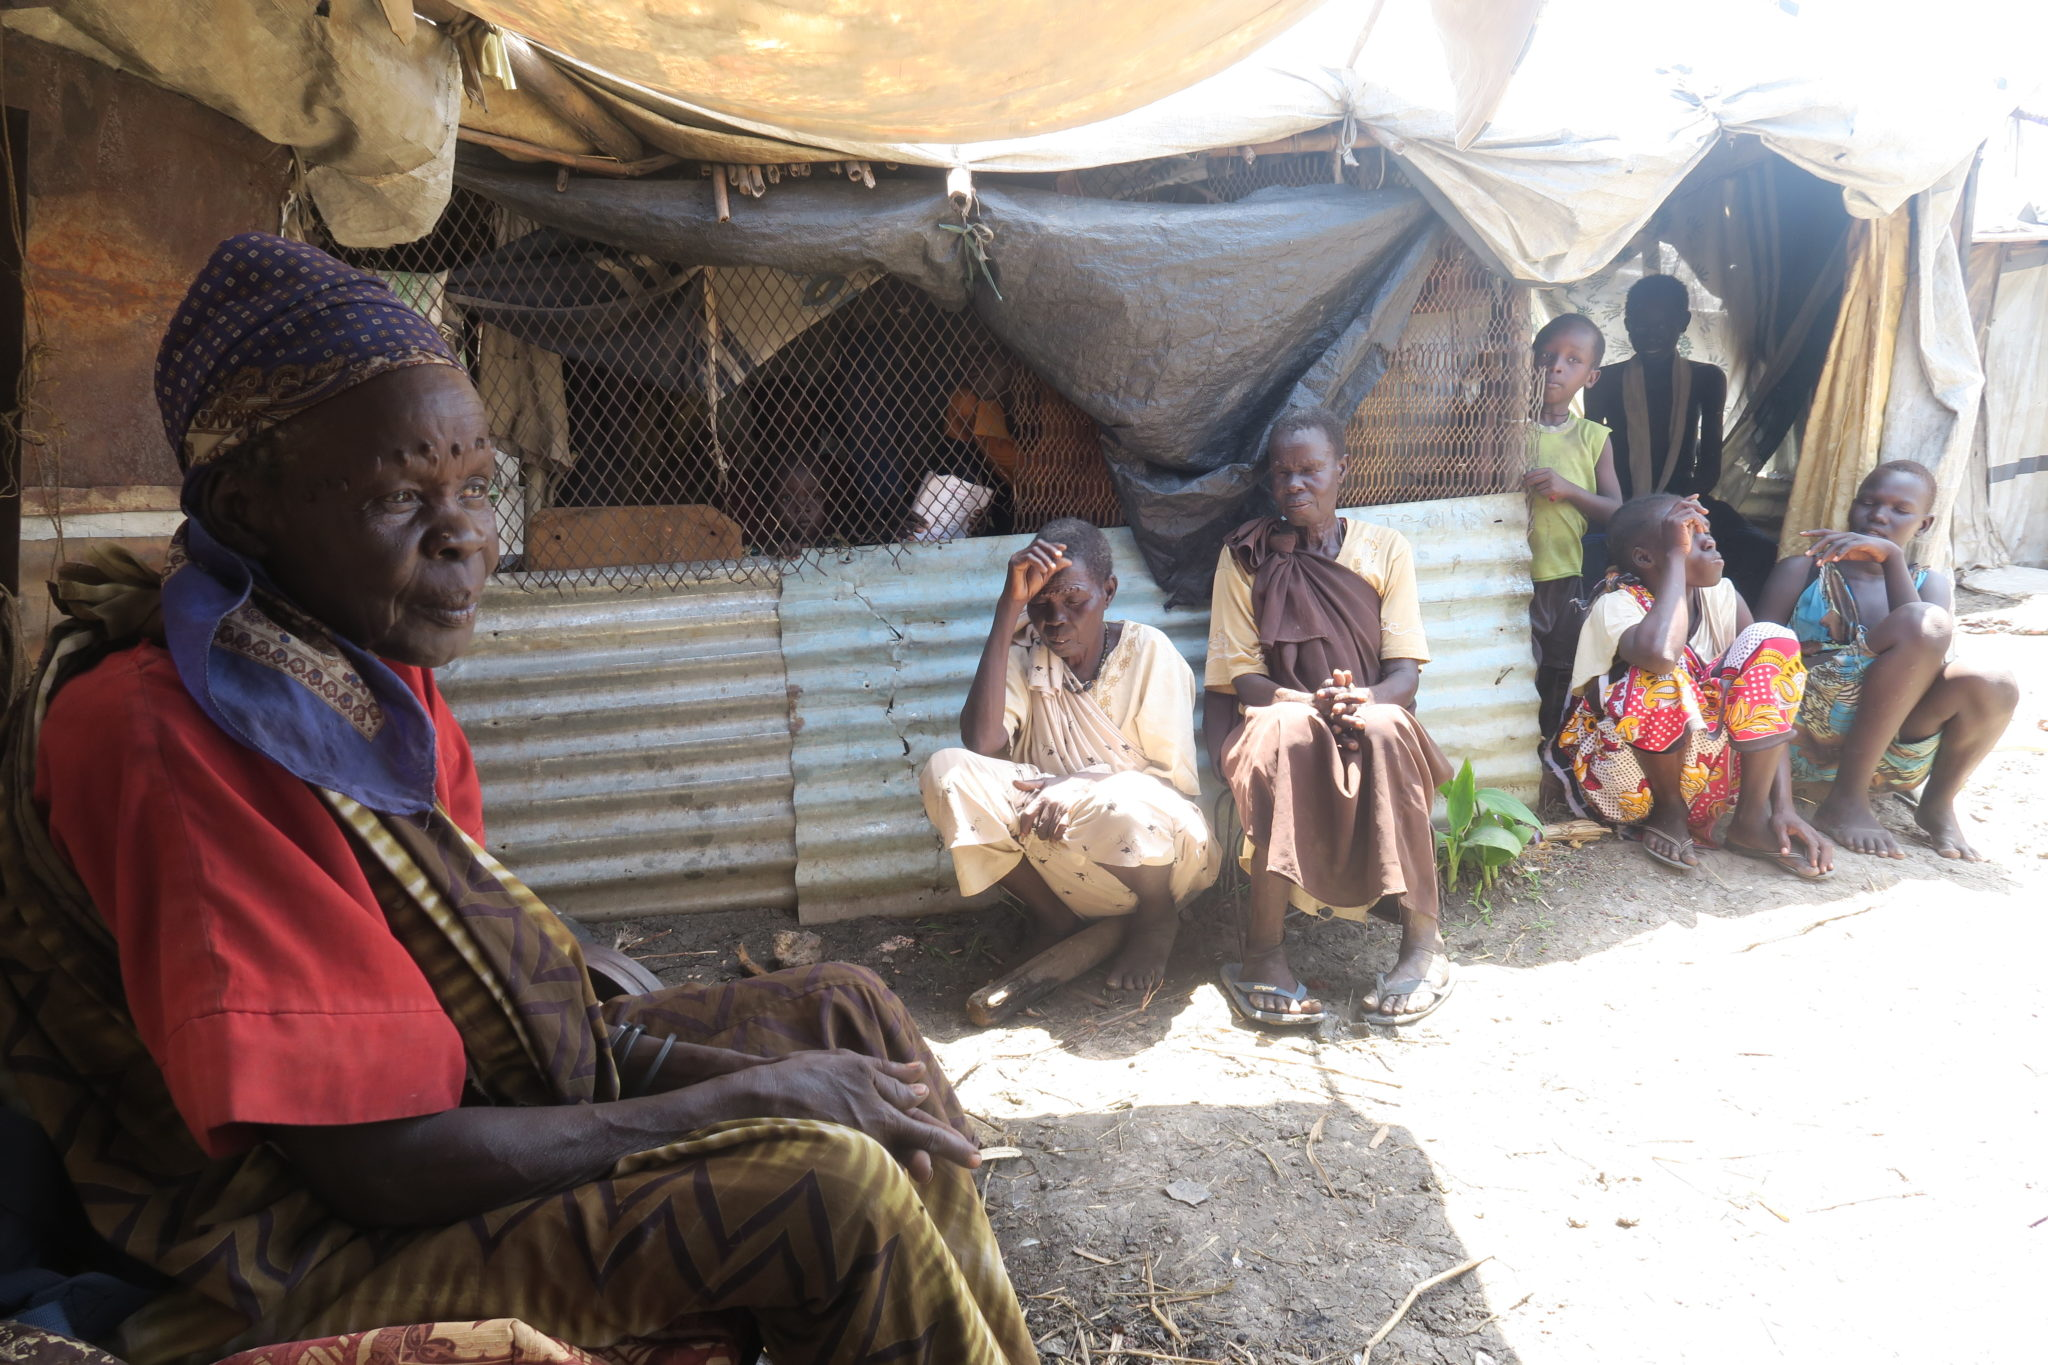 South Sudan: Killings, mass displacement and systematic looting as government forces purge civilians from Upper Nile